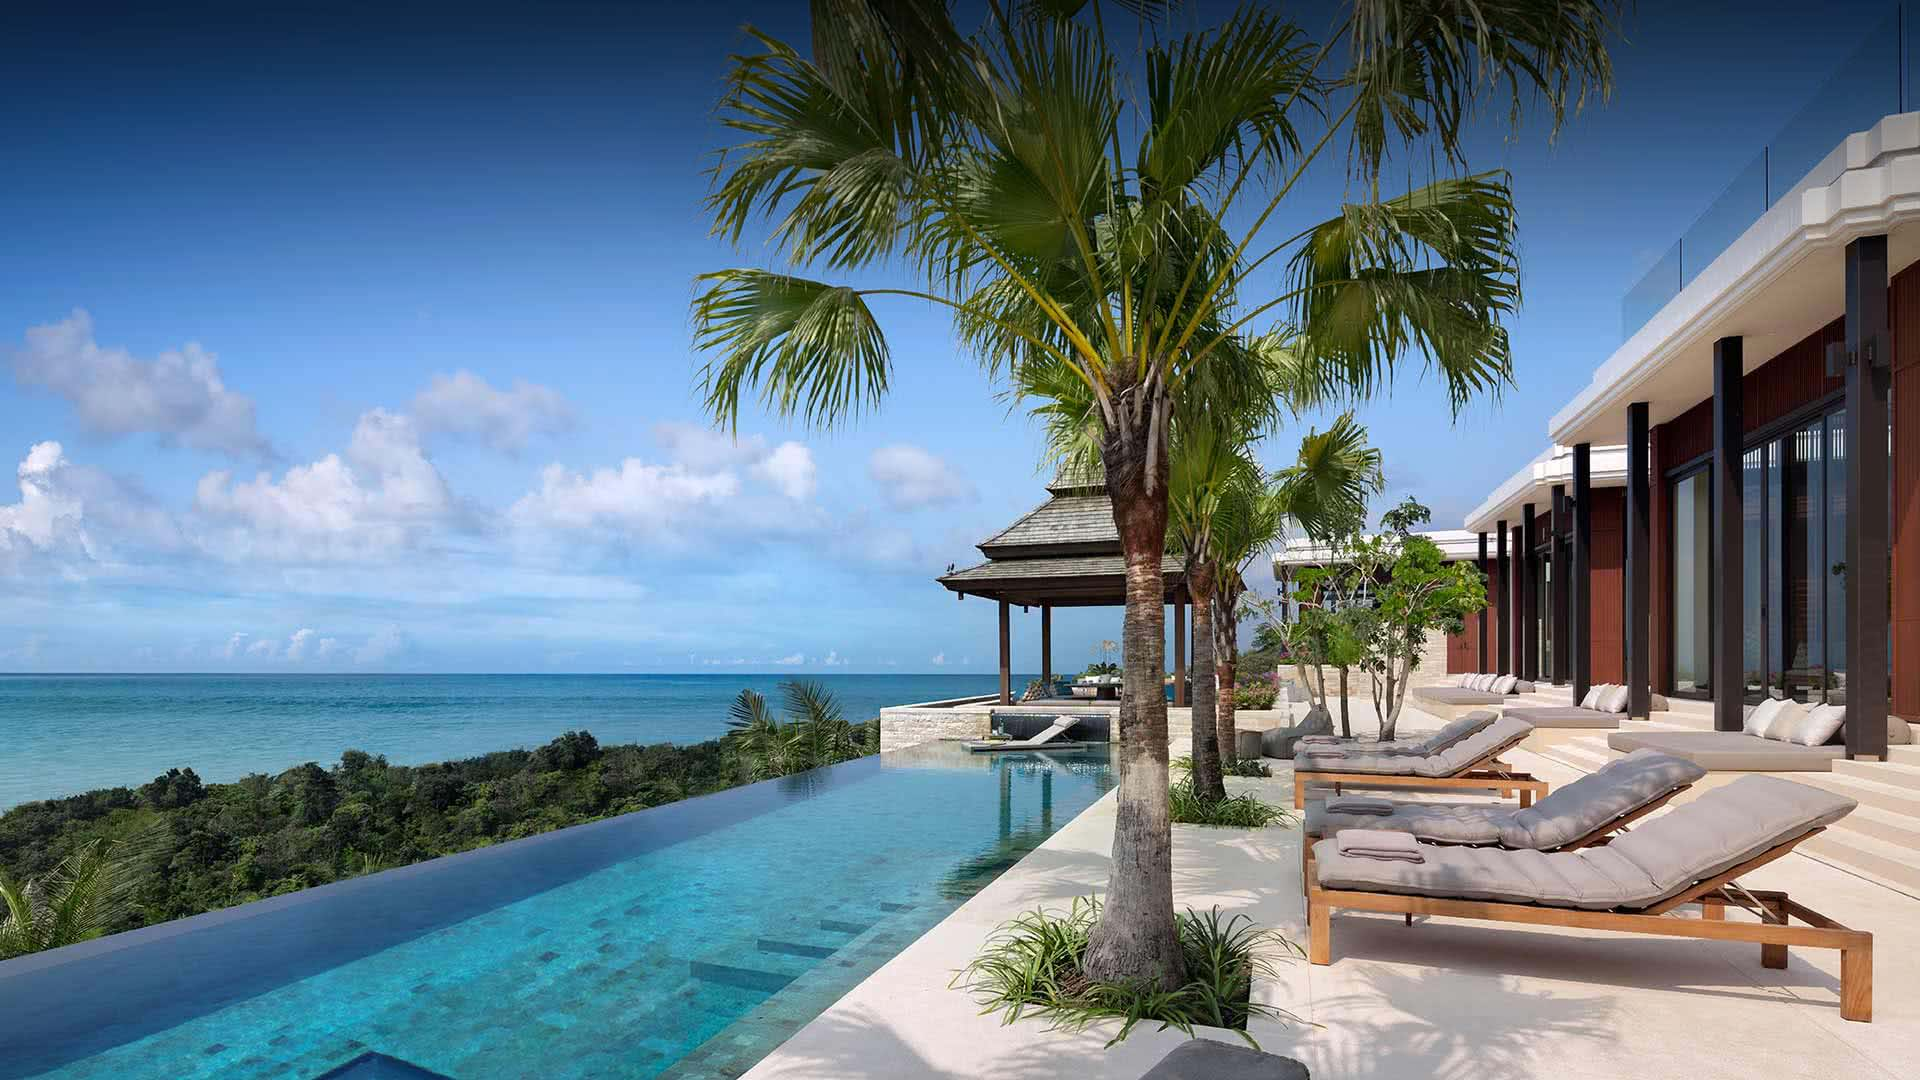 https://assets.anantara.com/image/upload/q_auto/media/minor/anantara/images/layan-residences-by-anantara/the-resort/layanresidences_theresort_header_1920x1080.jpg